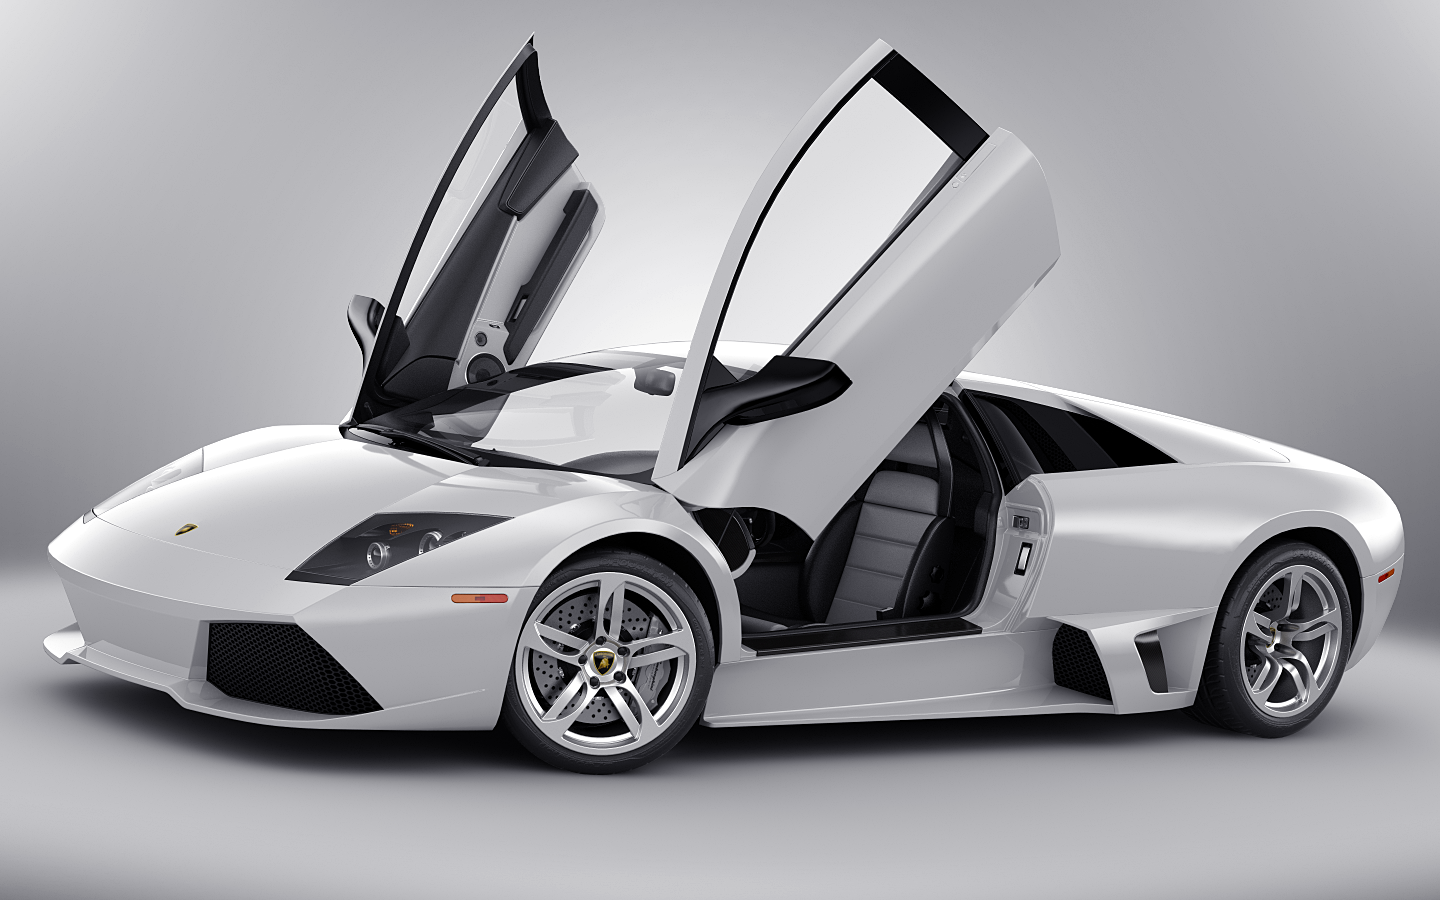 Lamborghini Murcielago Lp640 Doors Opened By Juvenile22 On Deviantart